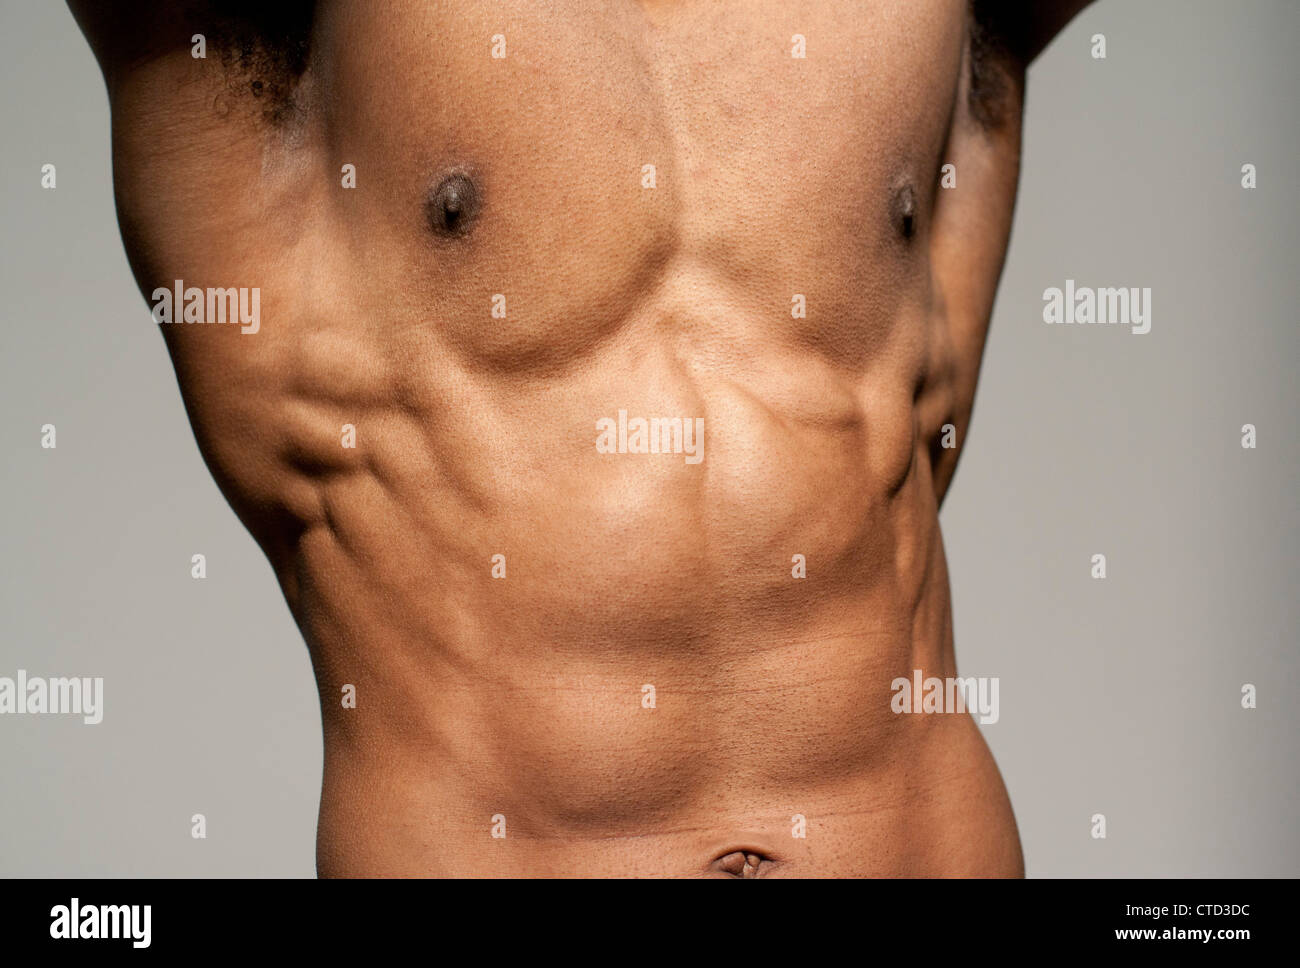 Front View Torso Anatomy Heart Stock Photos & Front View Torso ...